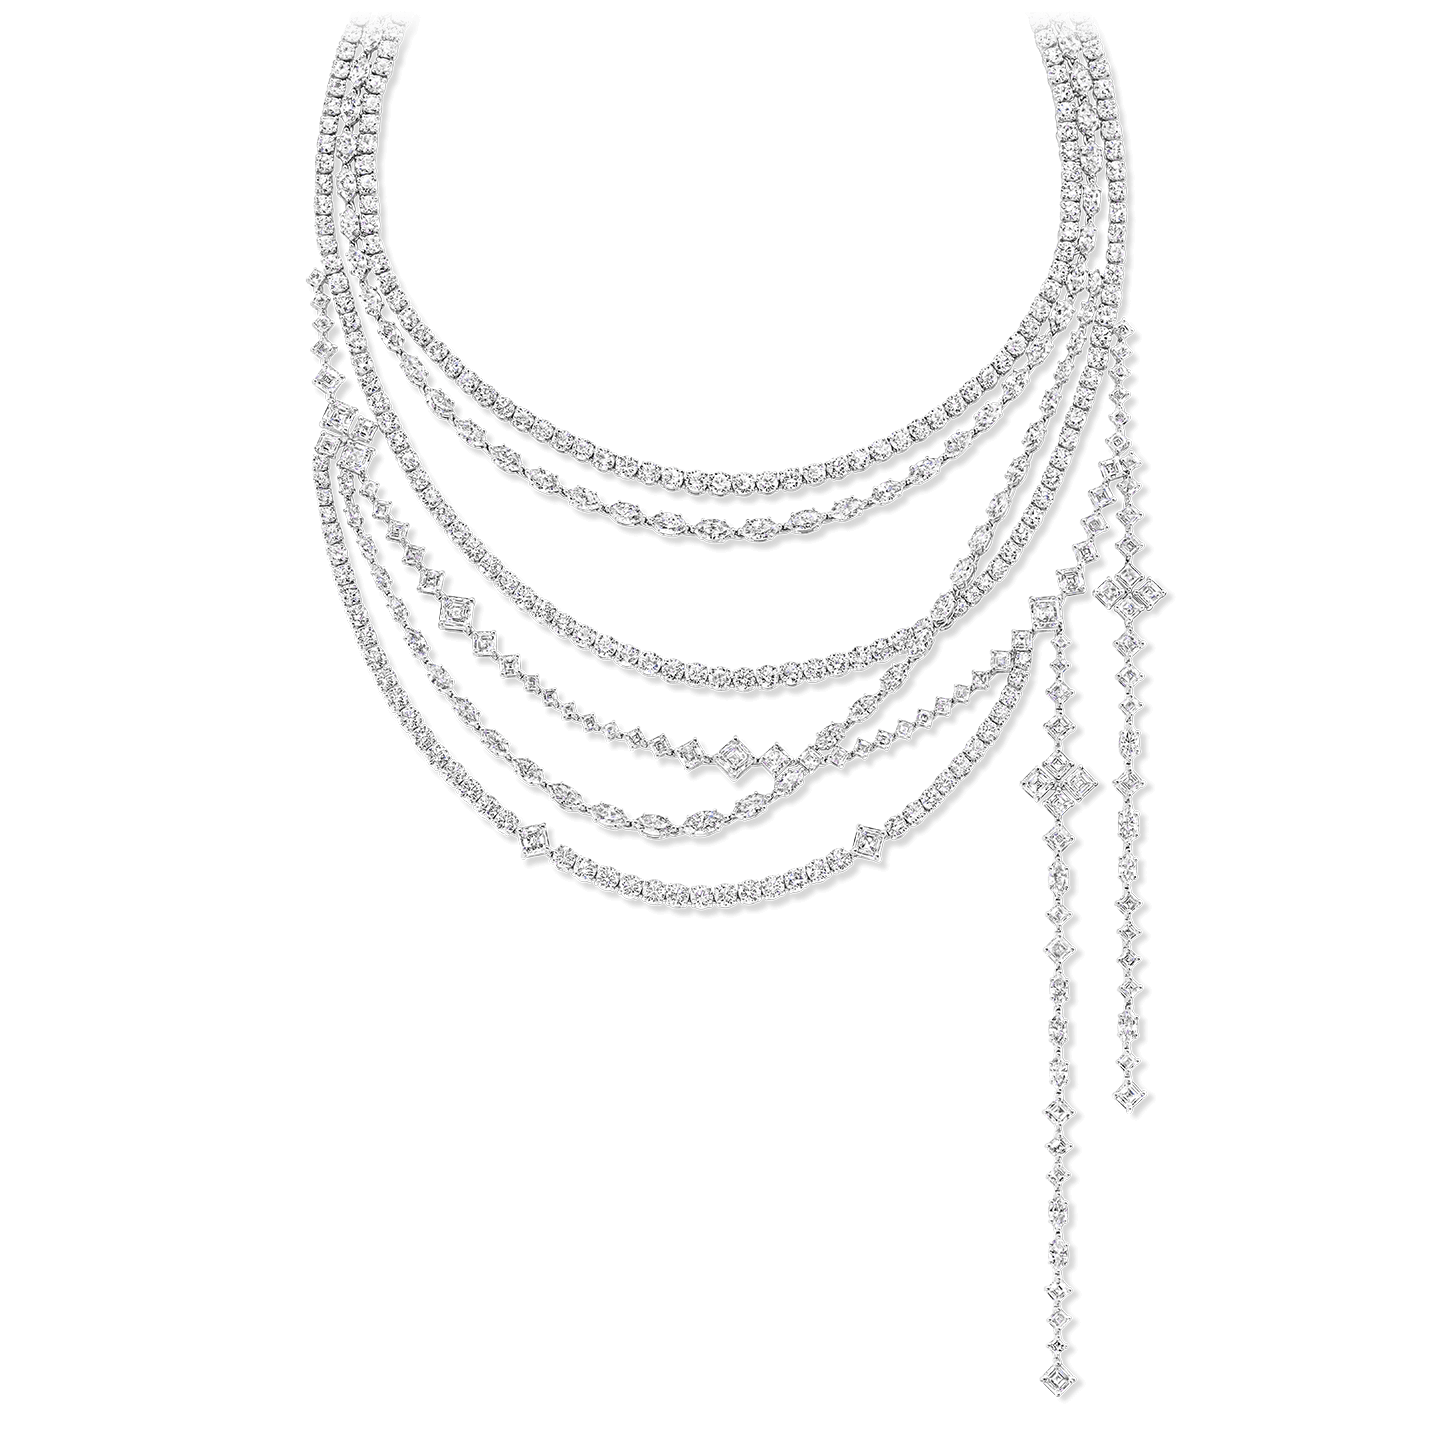 A necklace with 568 marquise, round brilliant, and square emerald-cut diamonds weighing a total of approximately 115.90 carats, set in platinum. Elements of the necklace may be worn in seven different configurations.